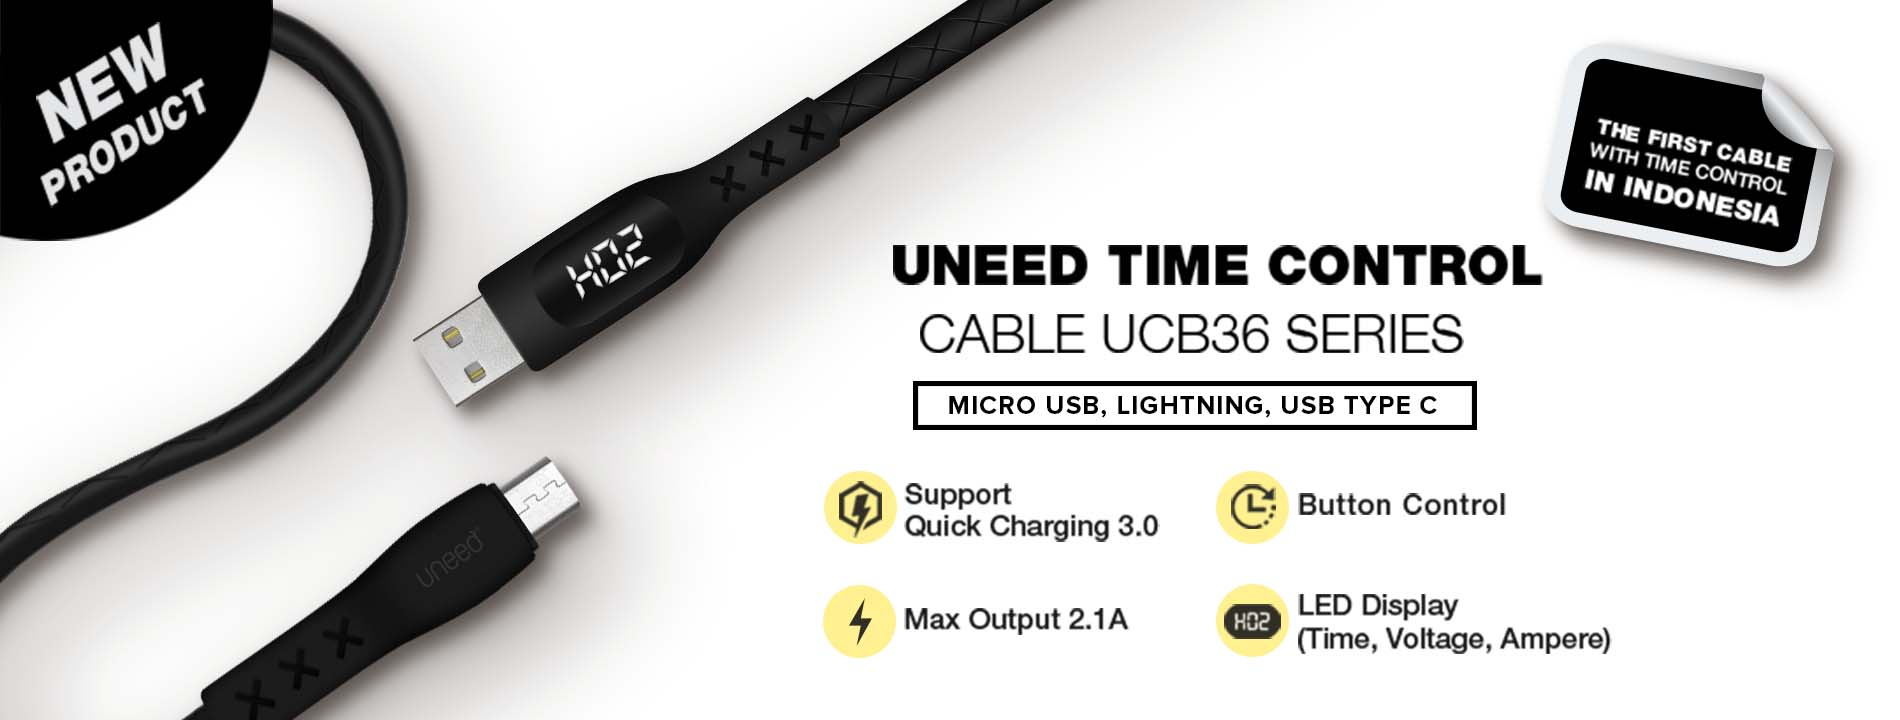 Uneed Cable Time Control UCB36